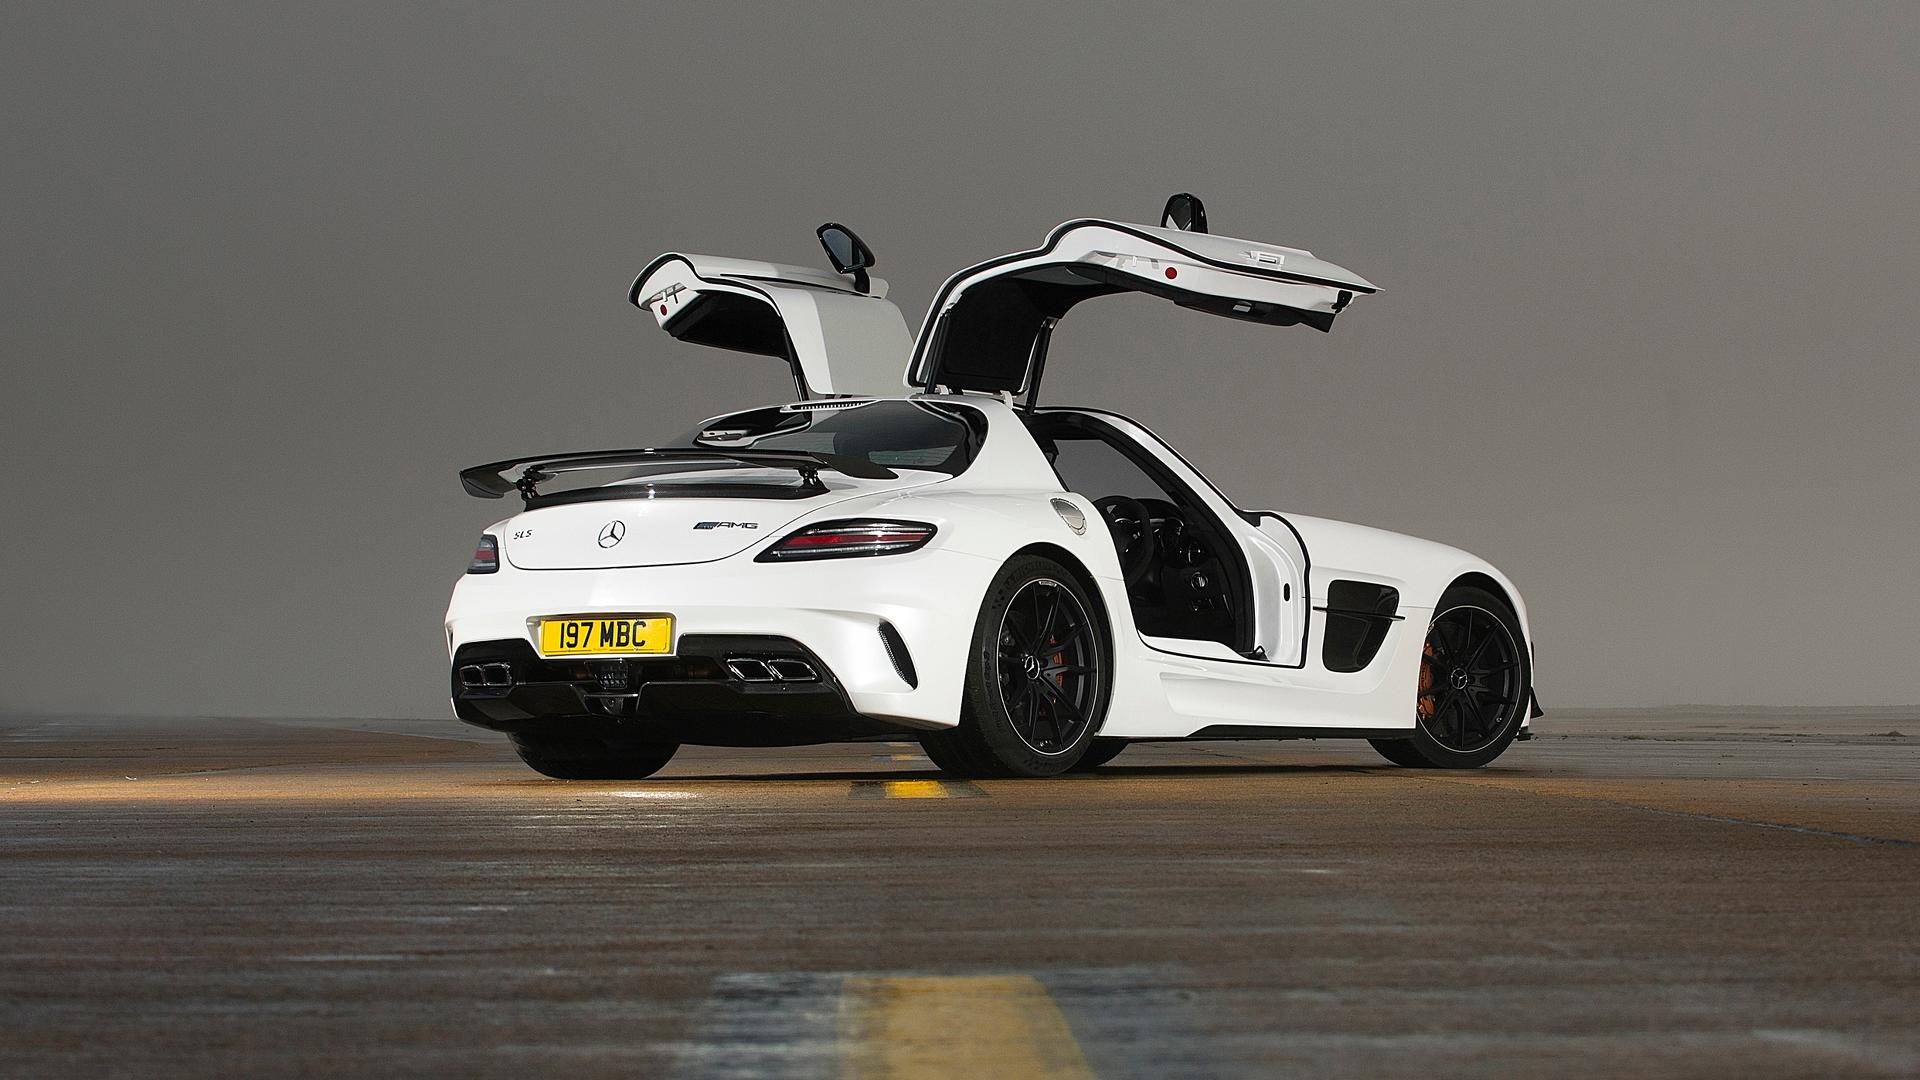 Sls Black Series >> Mercedes Amg Sls Black Series Motor1 Com Photos